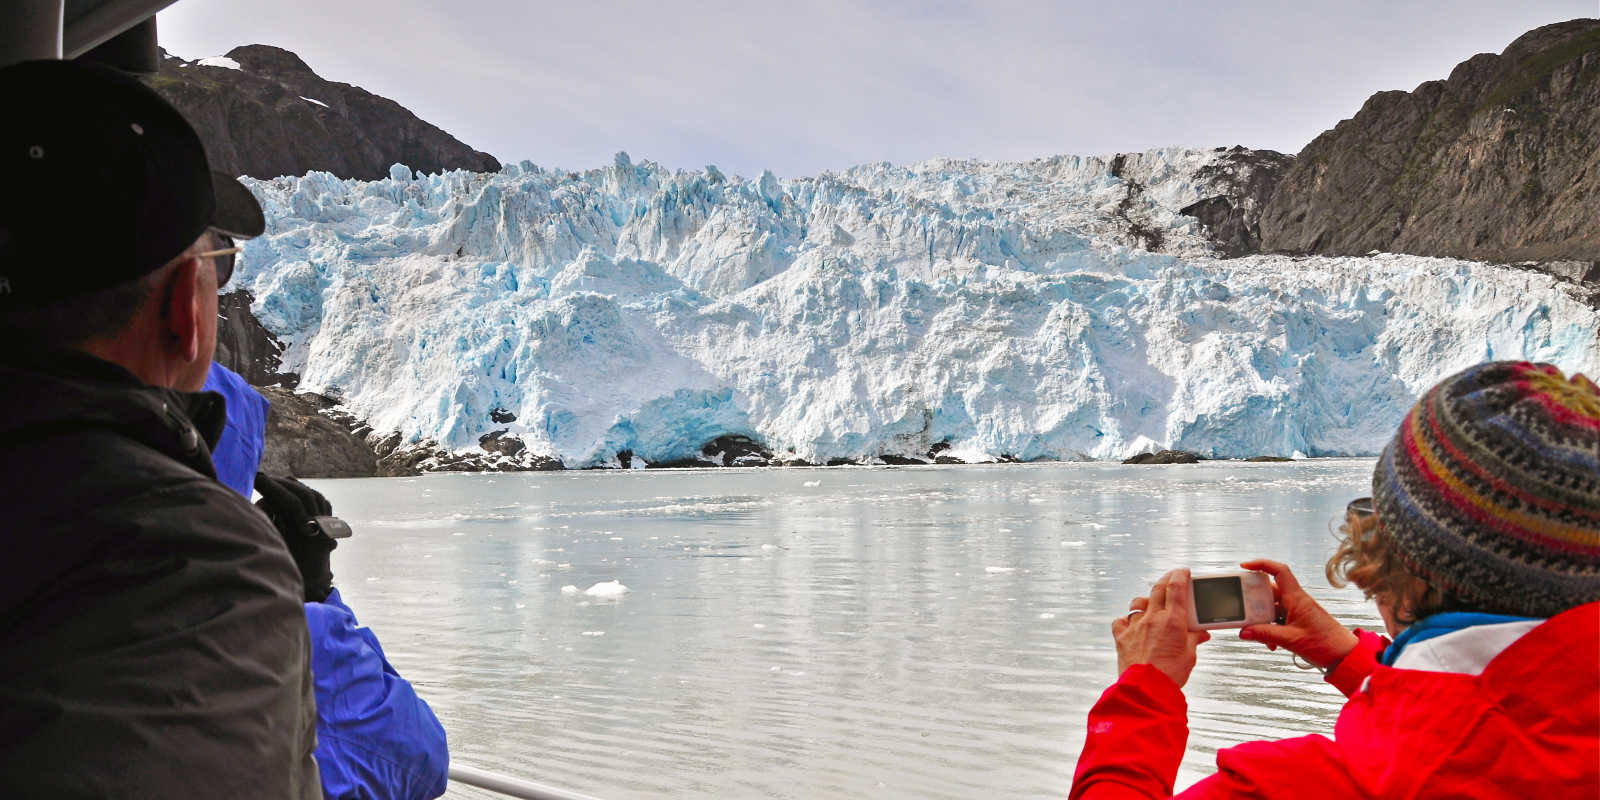 Alaska glacier day cruises near Anchorage in Kenai Fjords